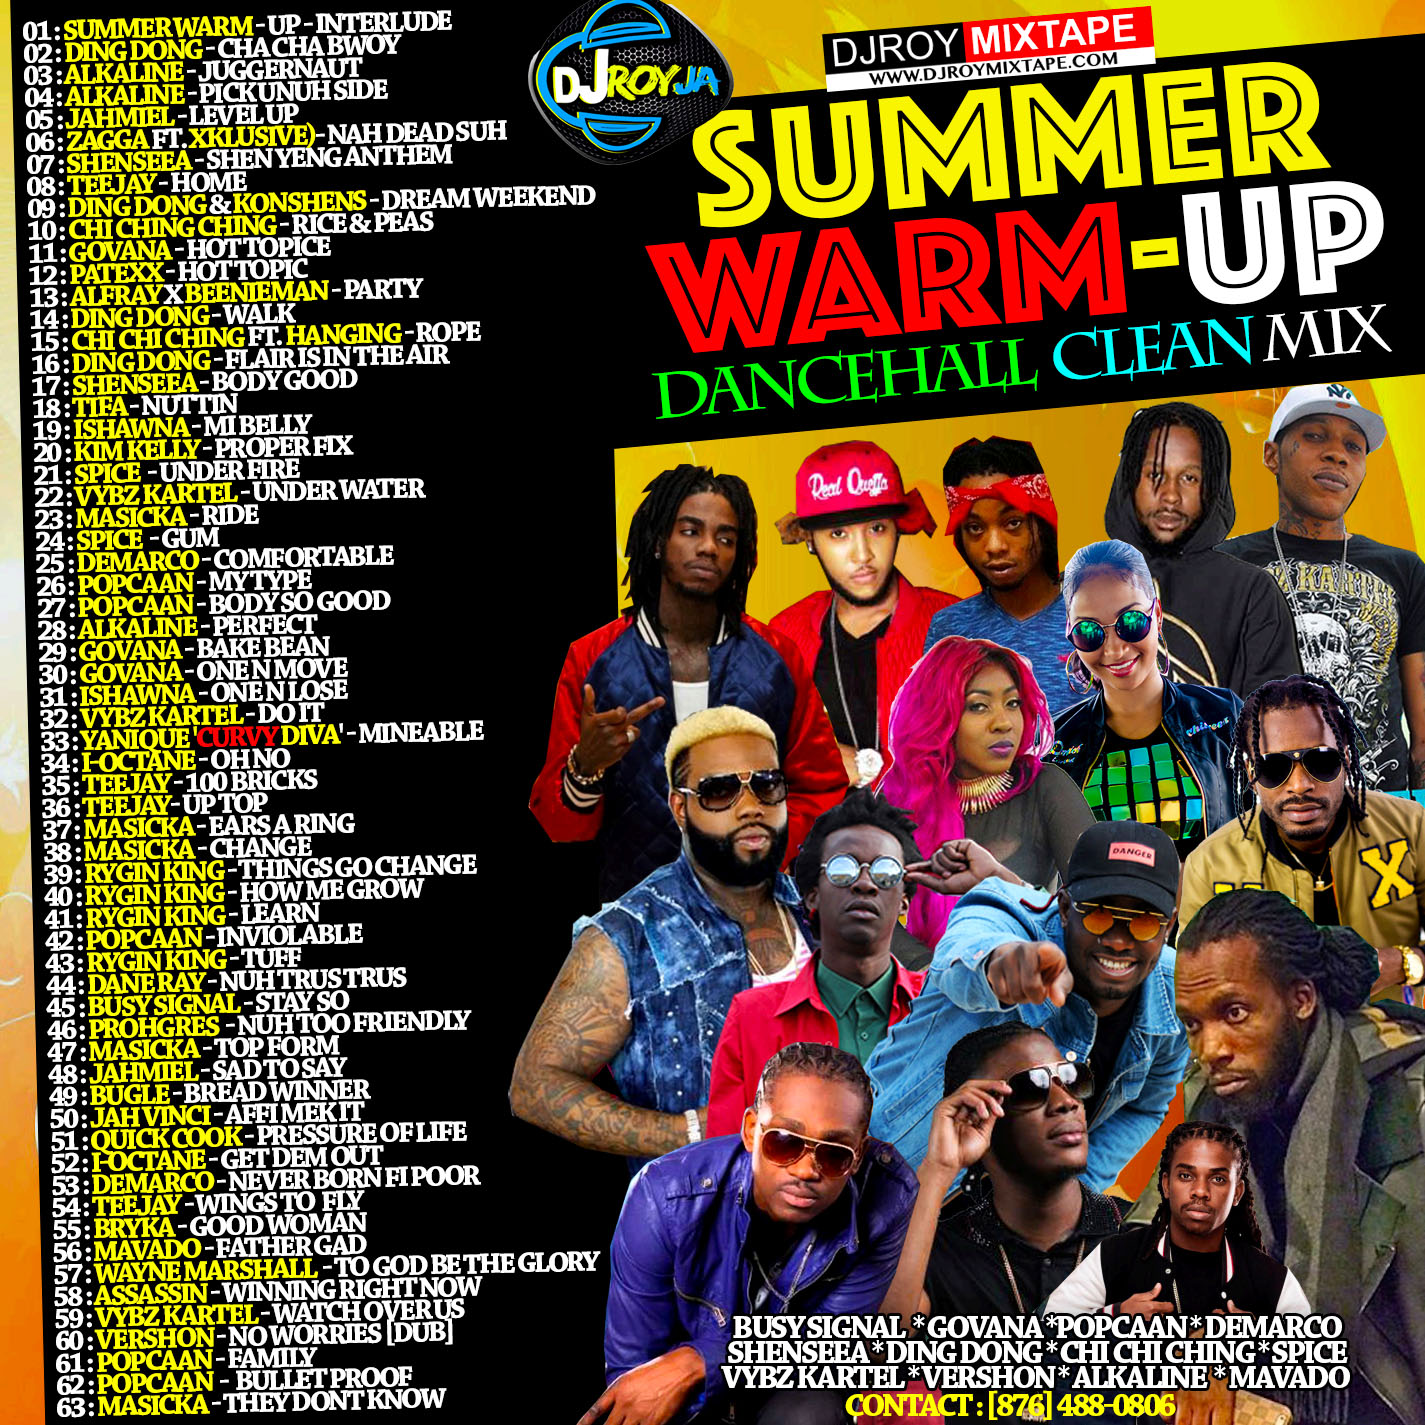 DJROYMIXTAPE : DJ ROY SUMMER WARM-UP DANCEHALL CLEAN MIX [JUNE 2018]